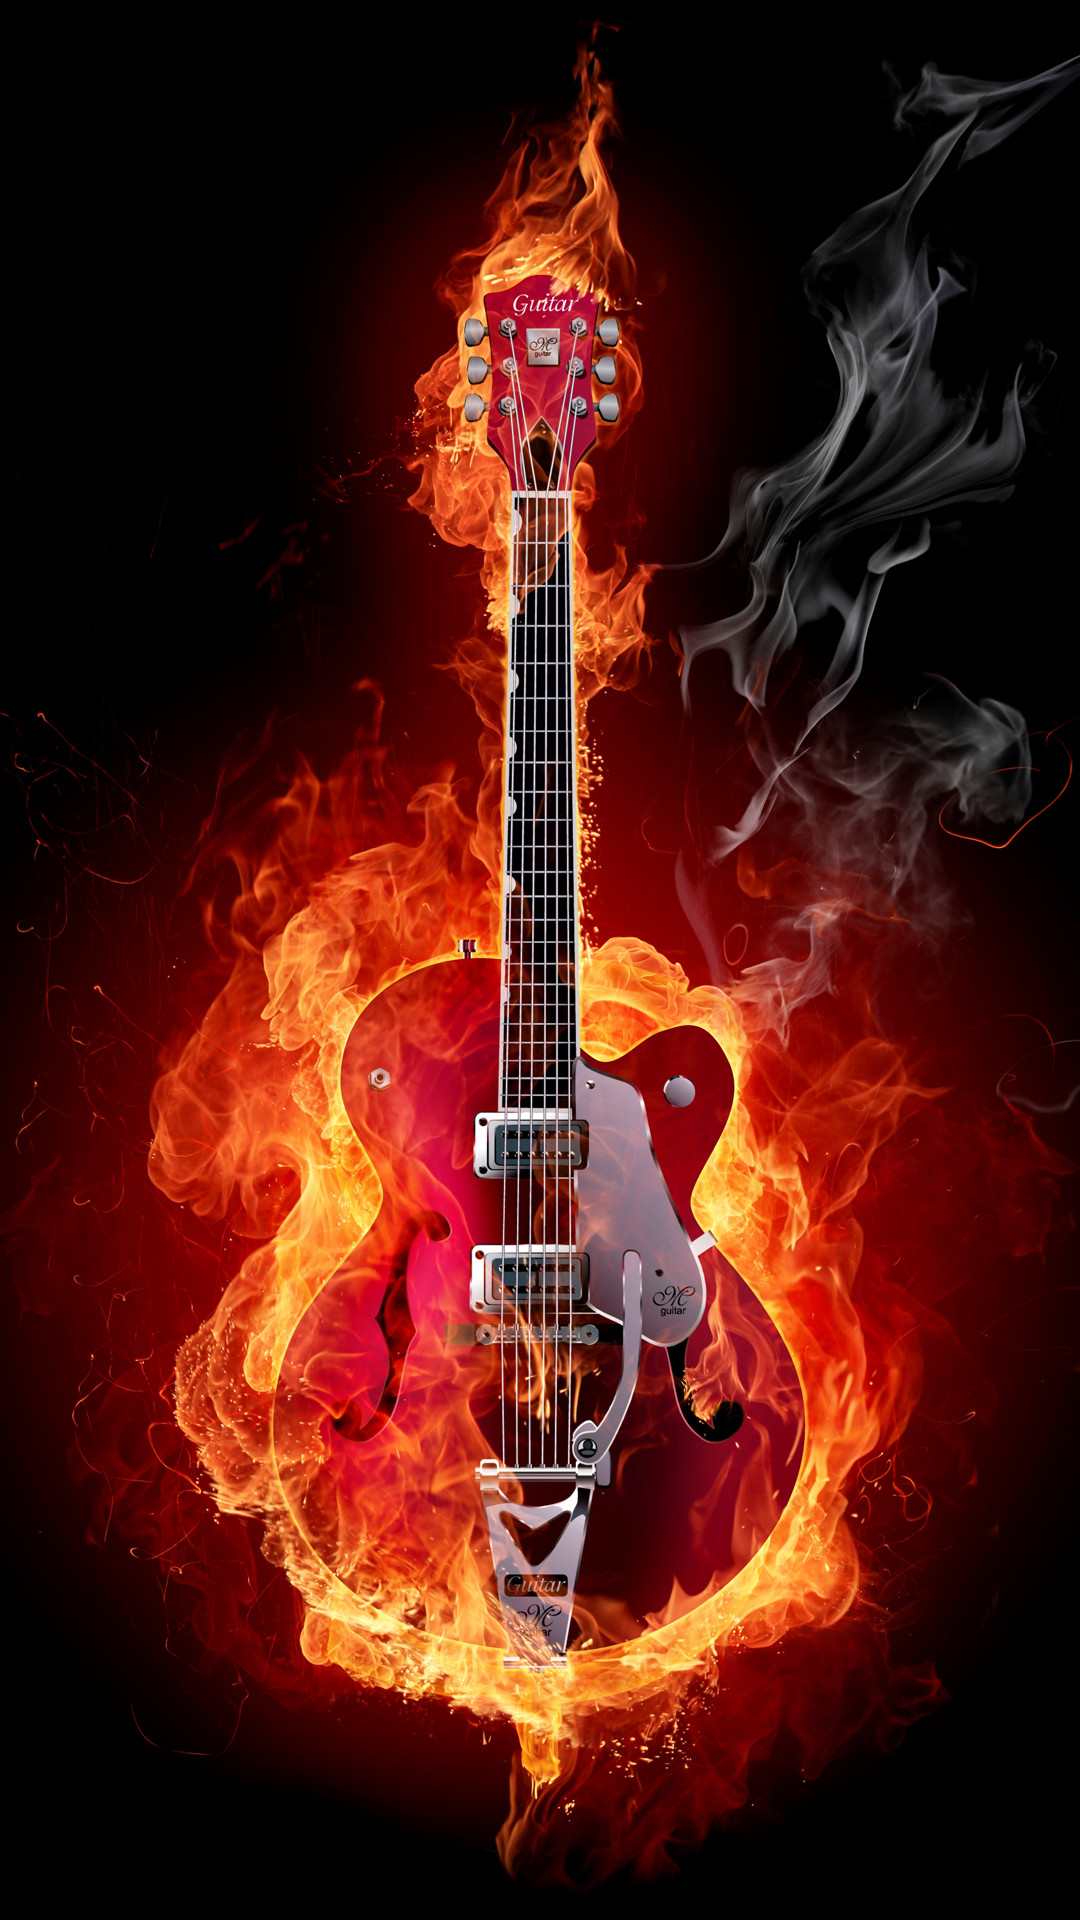 Guitar On Fire Wallpaper 64 Images